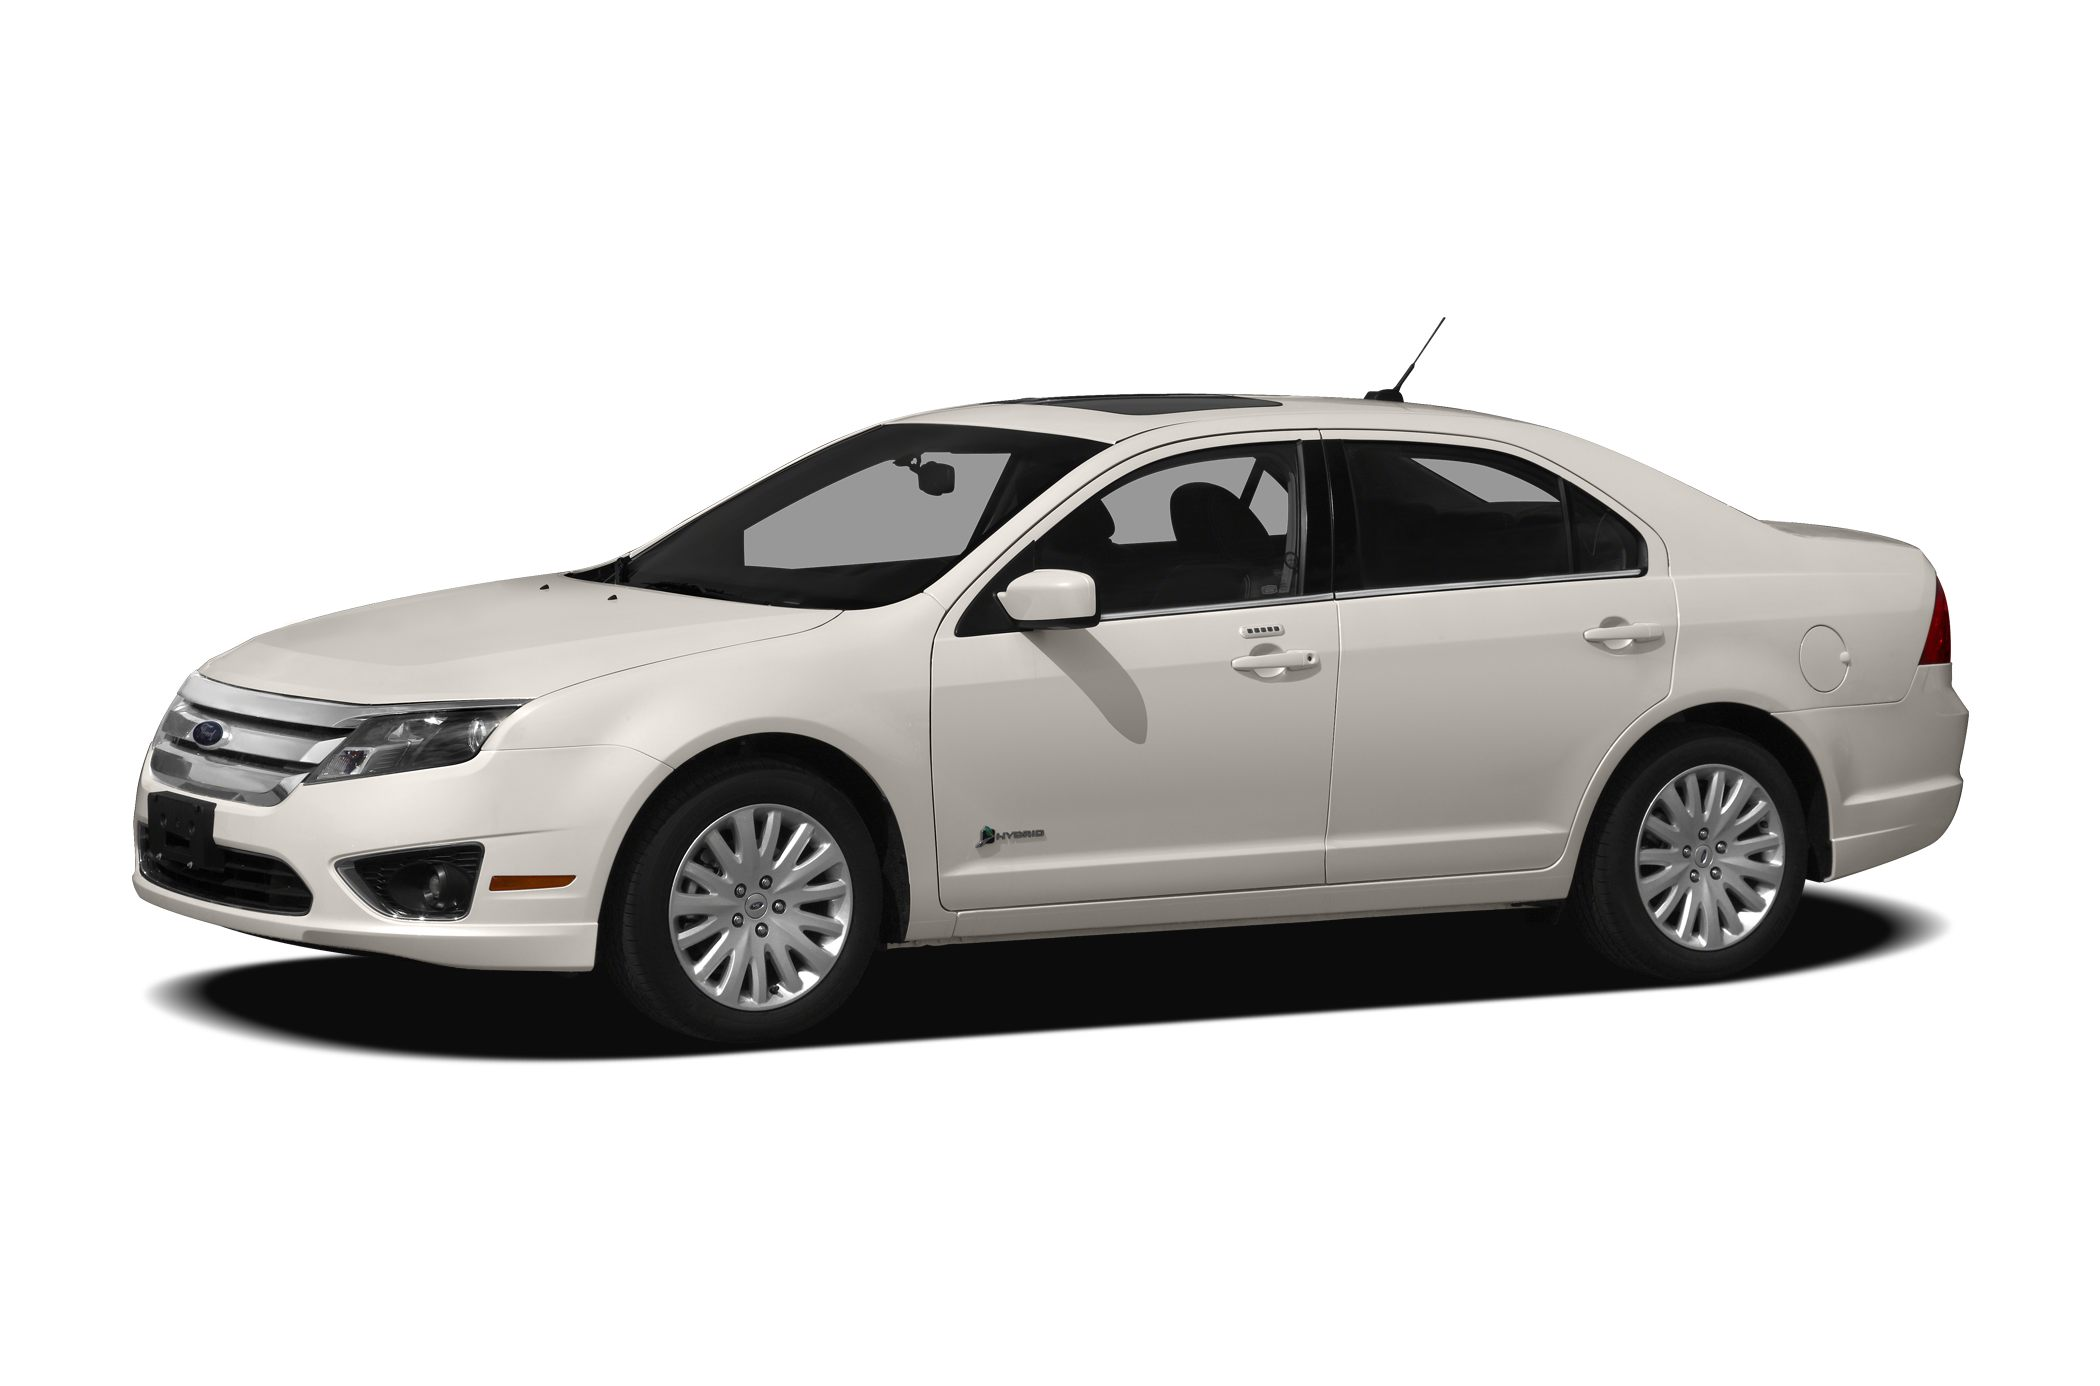 2012 Ford Fusion Hybrid Base Sedan for sale in Hurlock for $13,995 with 98,326 miles.